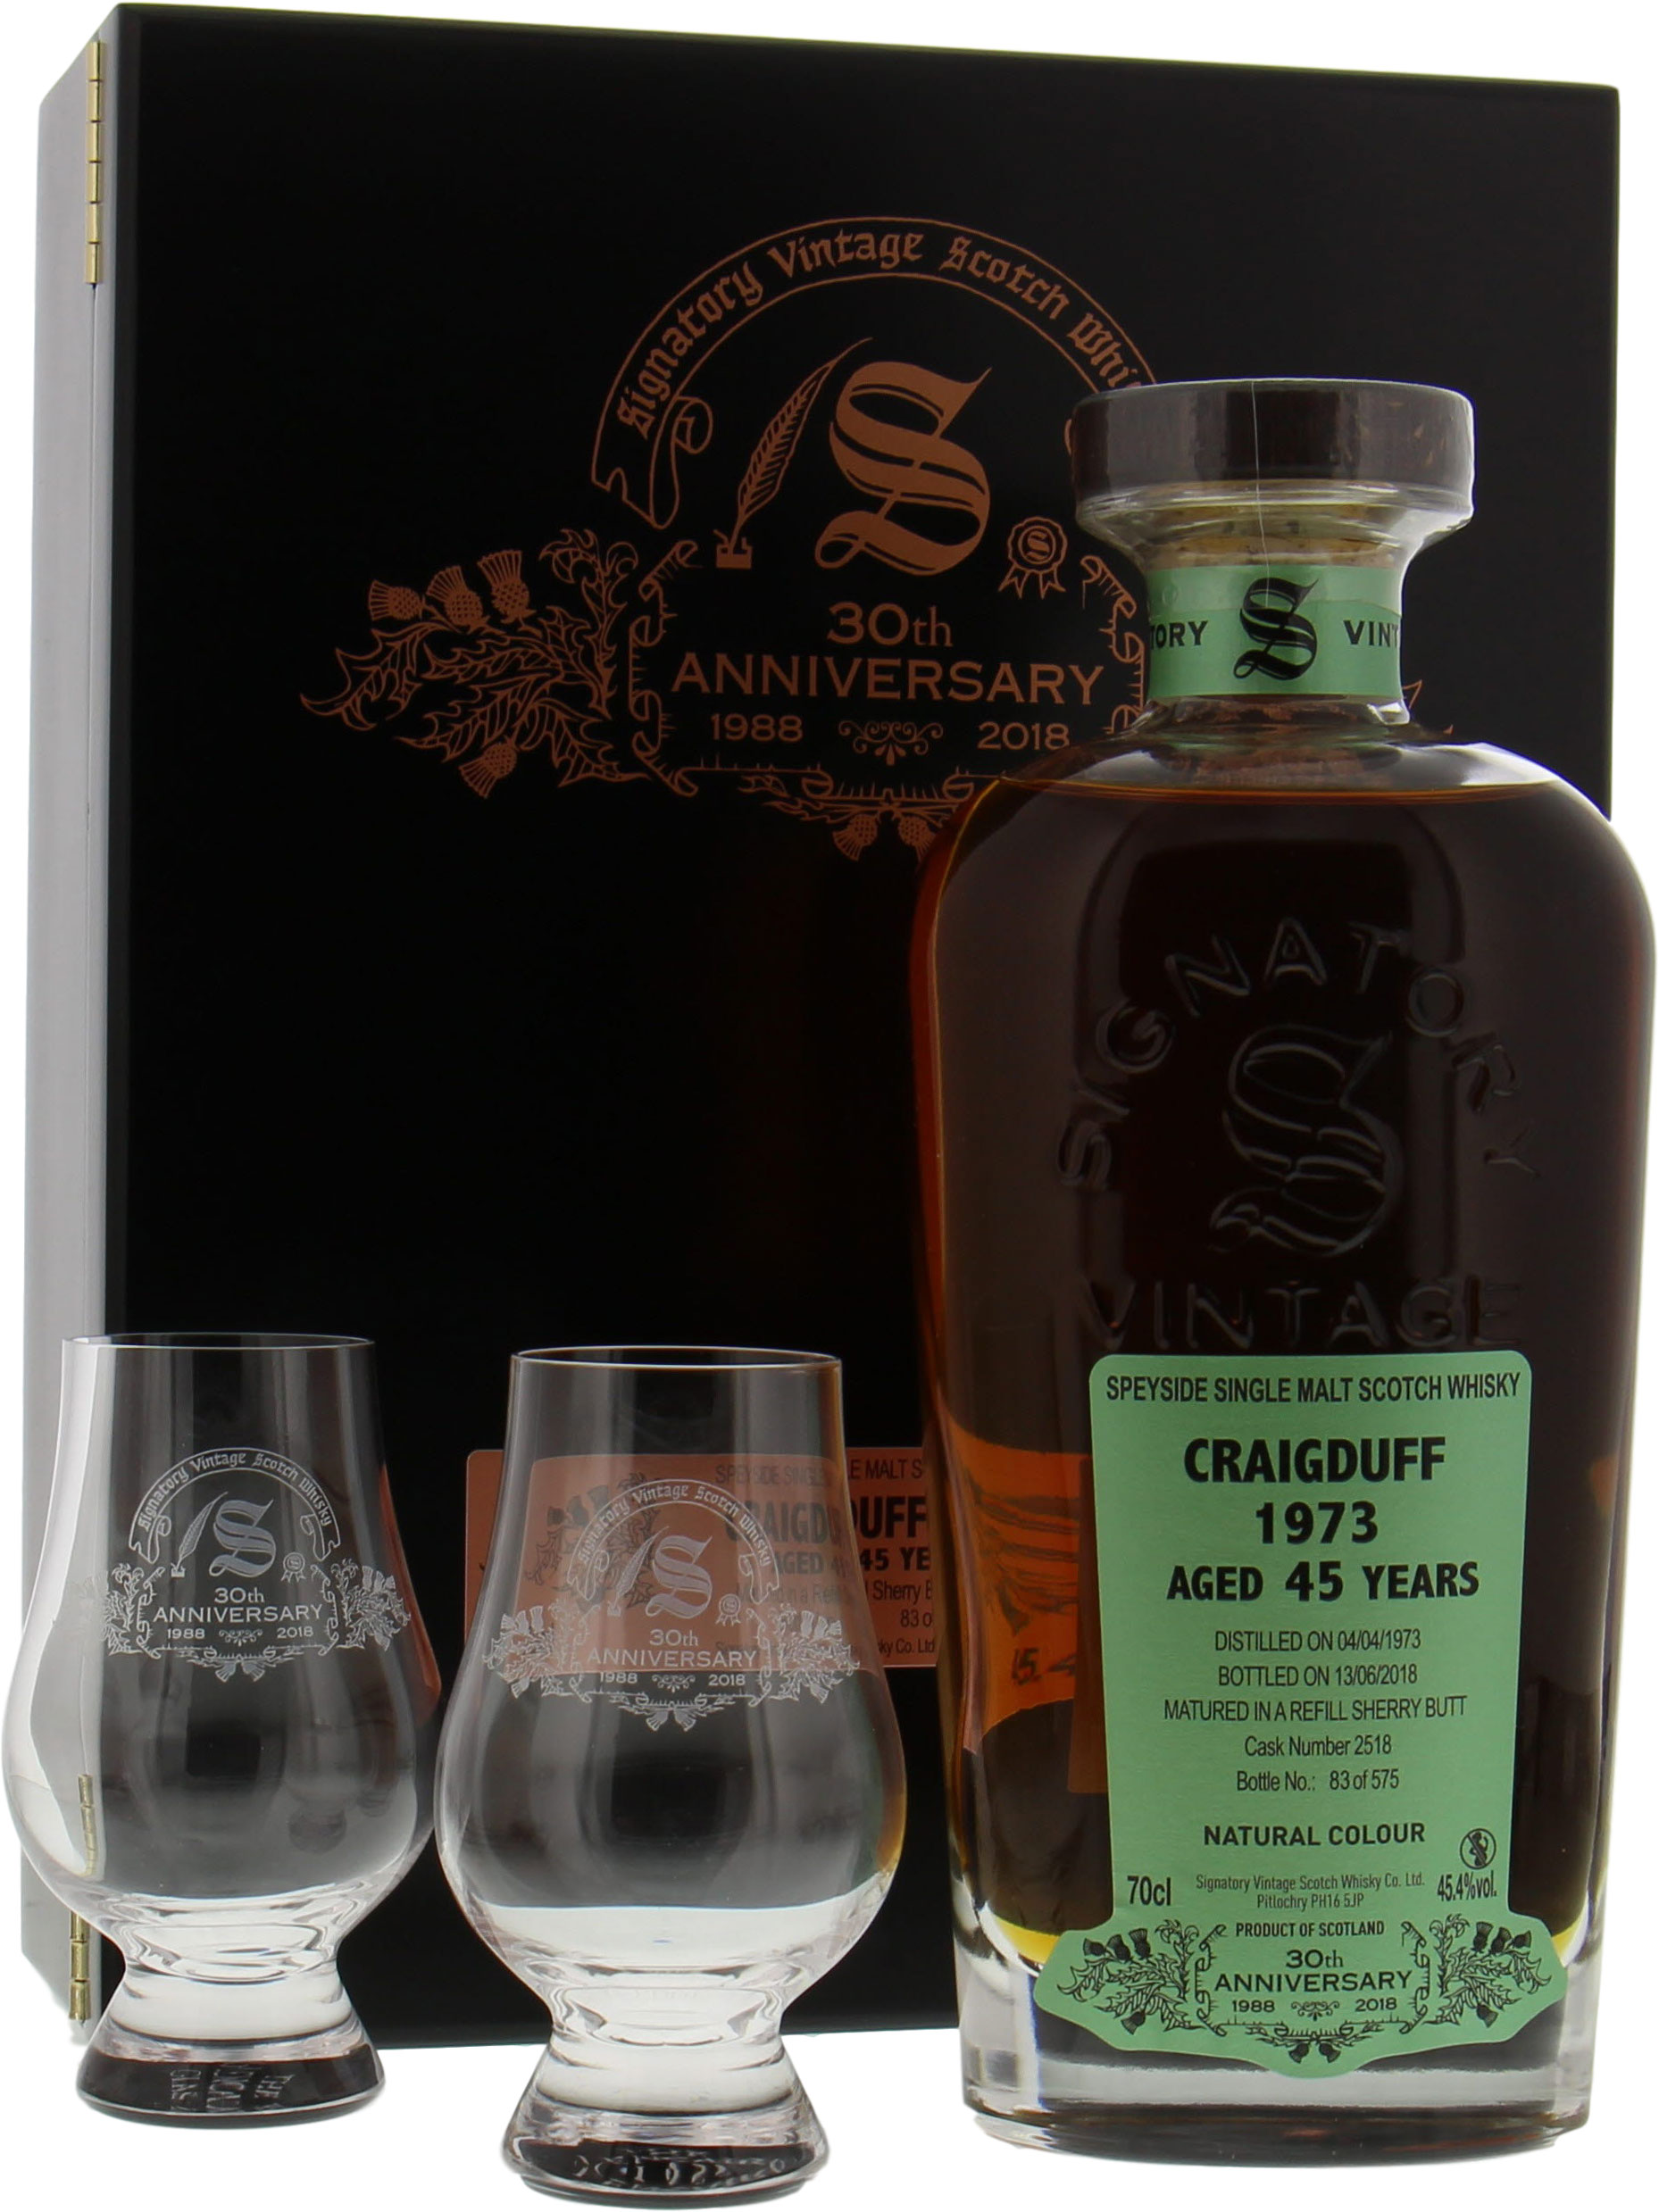 Craigduff - 45 Years Old Signatory 30th Anniversary Cask 2518 45.4% 1973